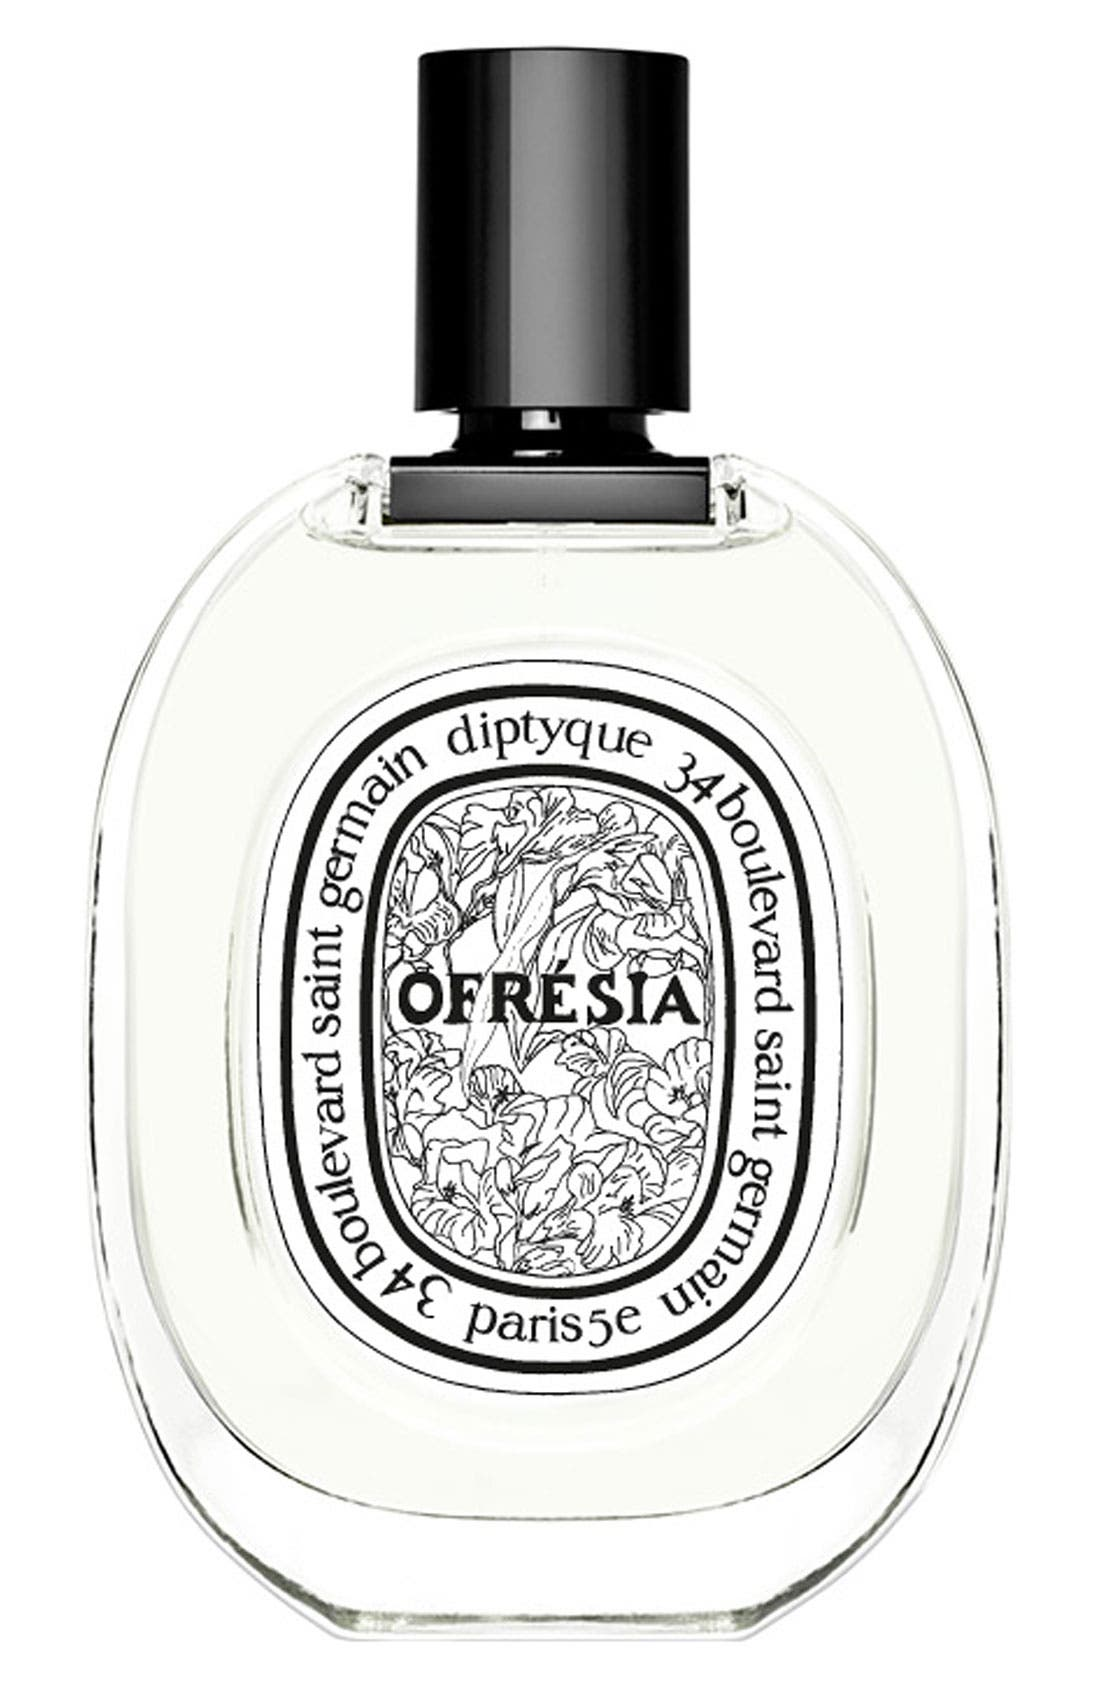 Ofrésia Eau de Toilette,                             Main thumbnail 1, color,                             NO COLOR